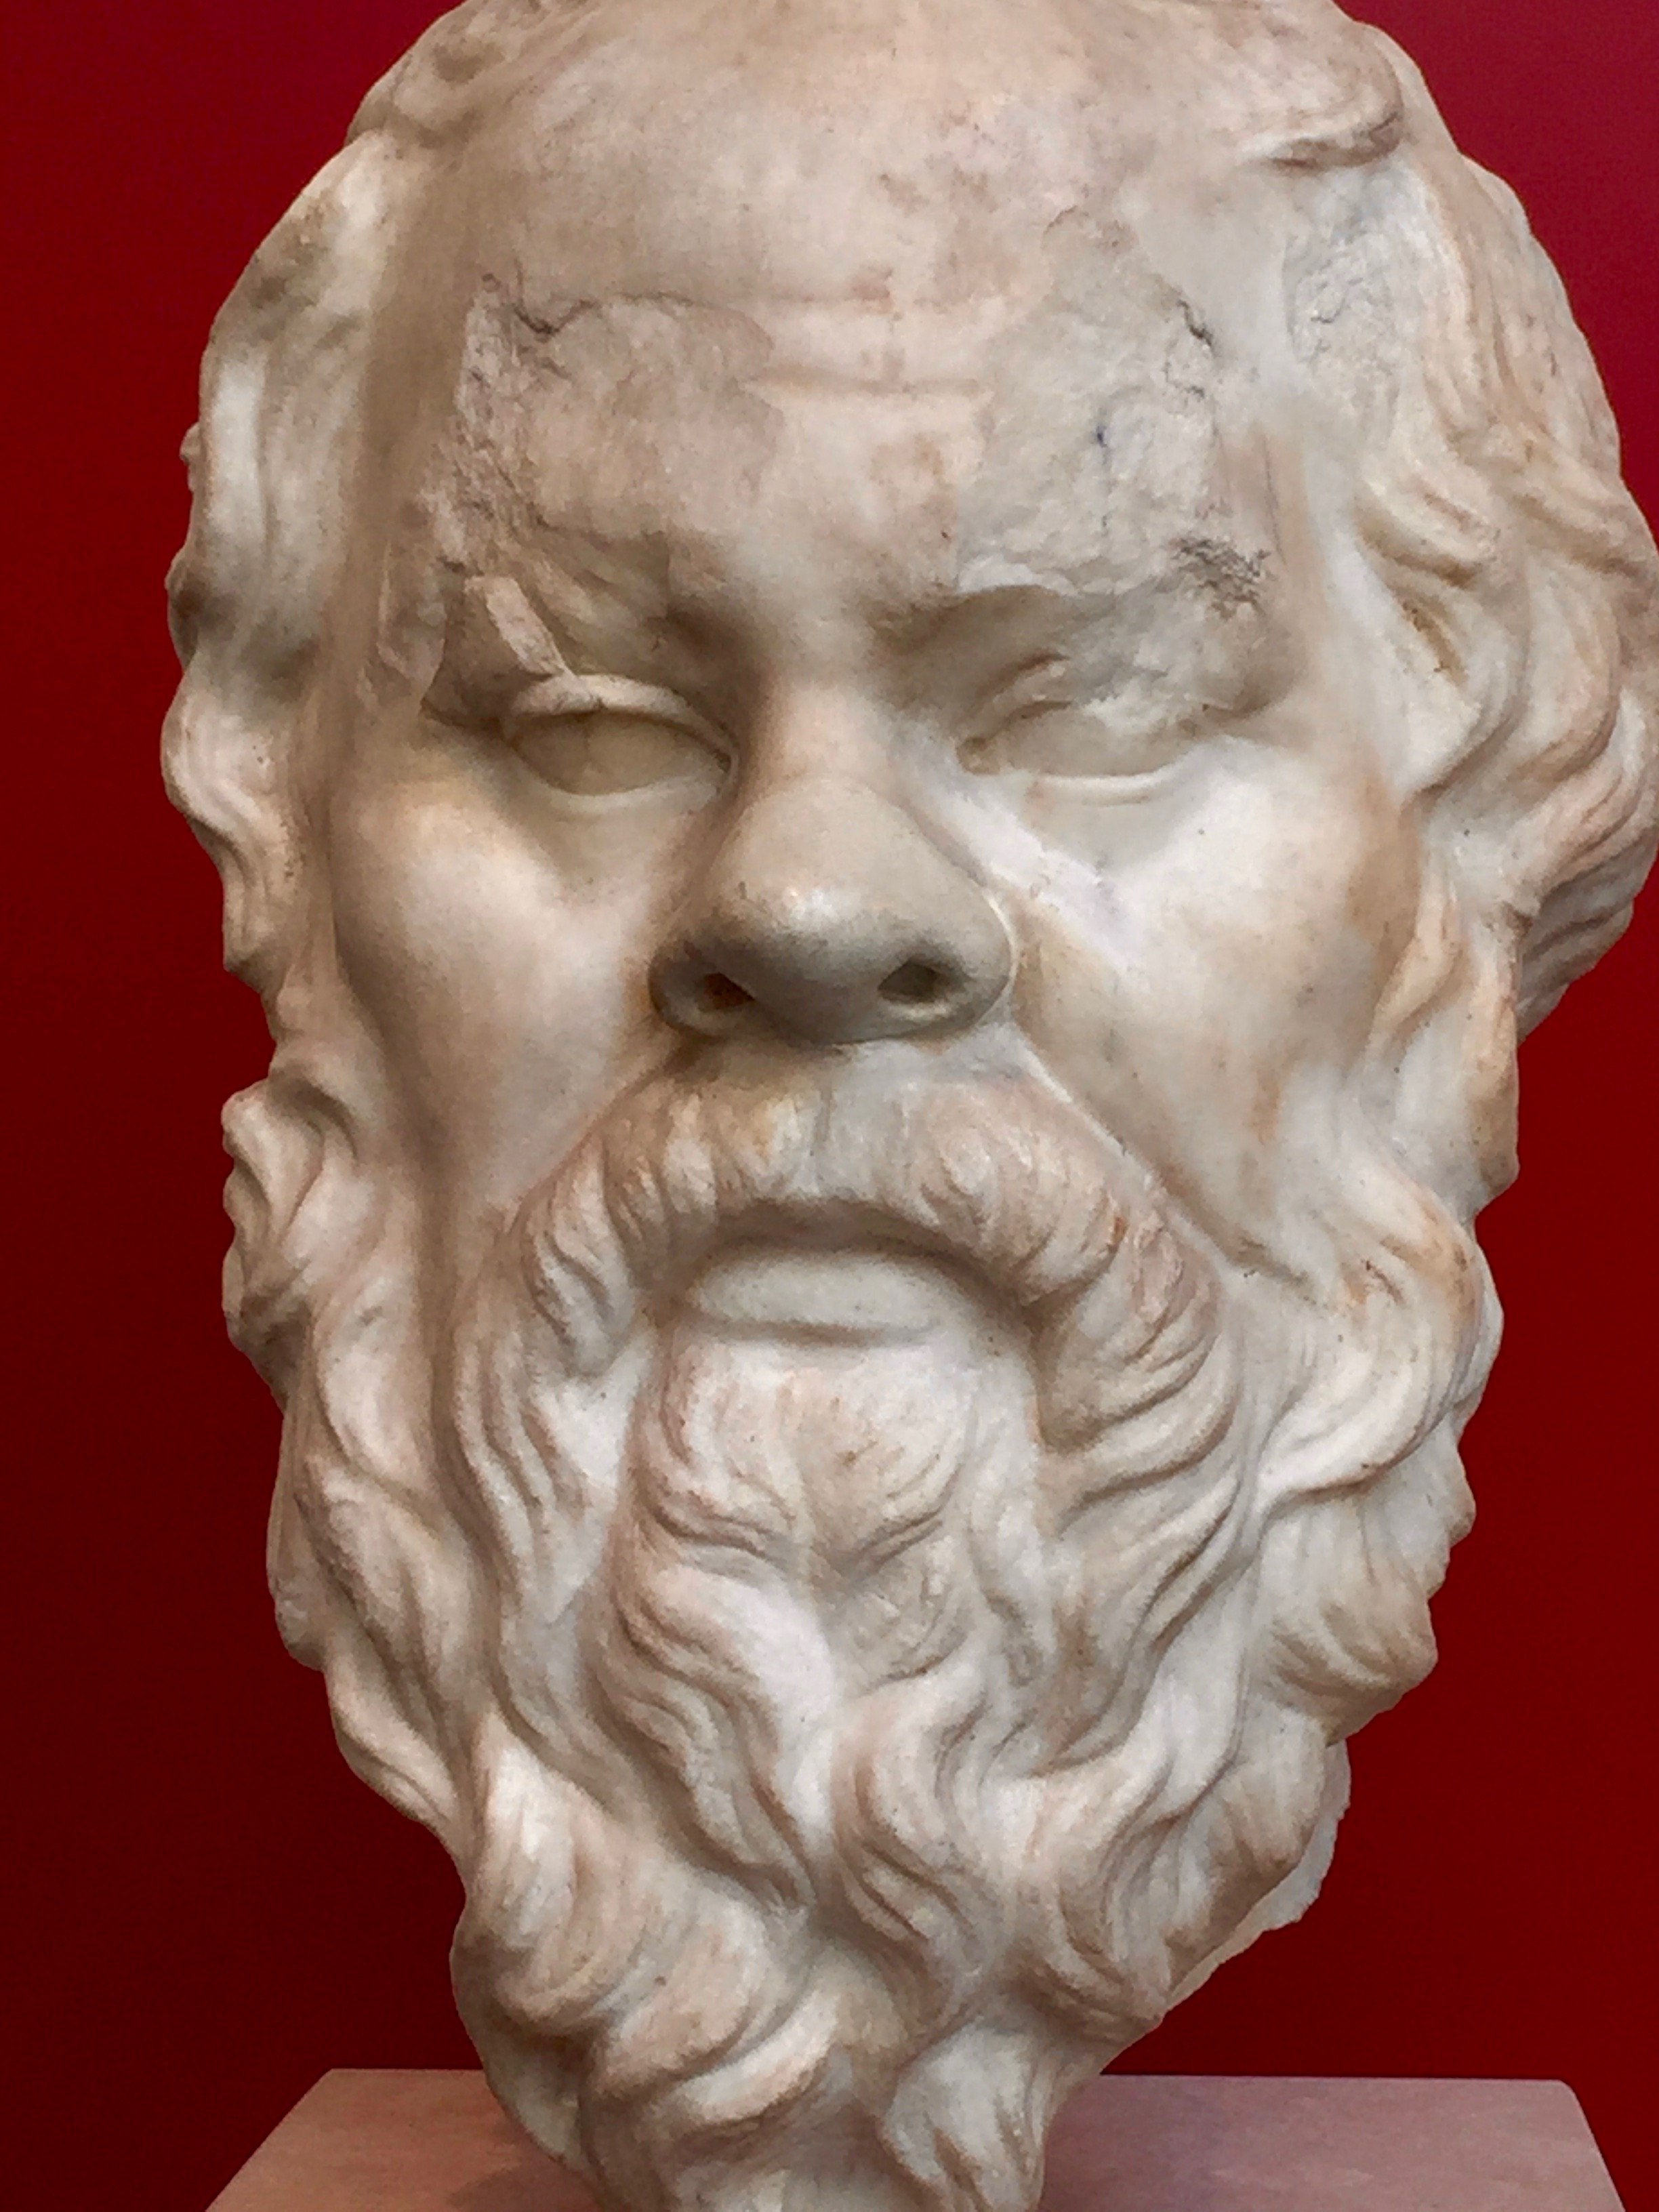 plato on tradition and belief essay [in the following essay, cooke comments on plato's view of the role of philosophy in everyday life, stating that for plato, philosophy is not an abstract concept, but one that draws from all.